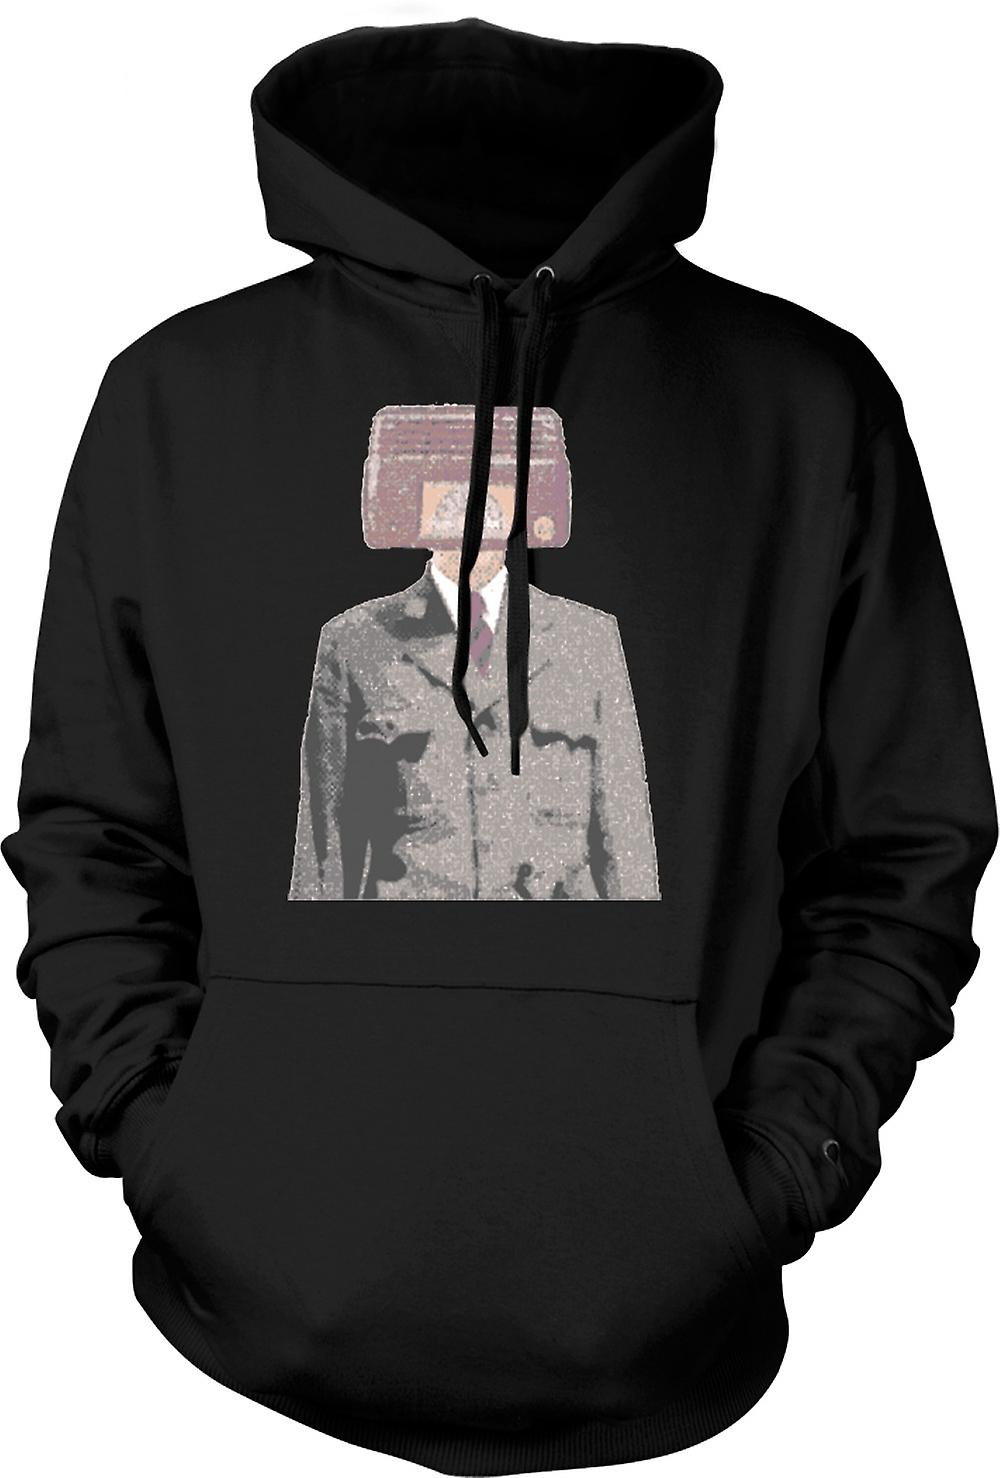 Mens Hoodie - Radiohead - Pop Art - Conception